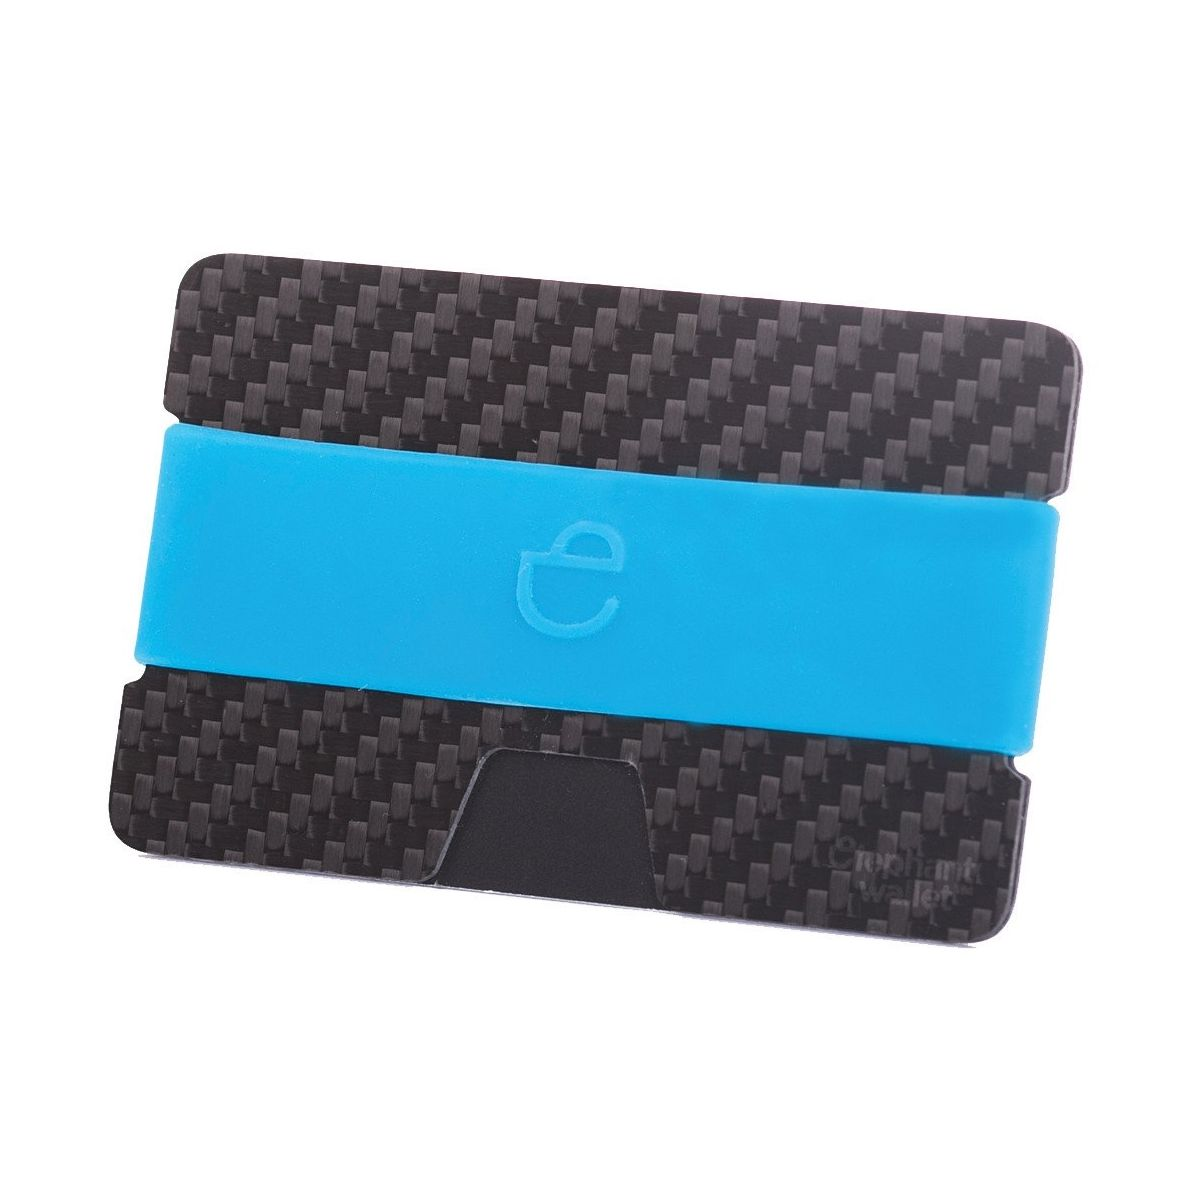 Minimalist Carbon Fiber Wallet with Silicone Strap - Carbon/Azur